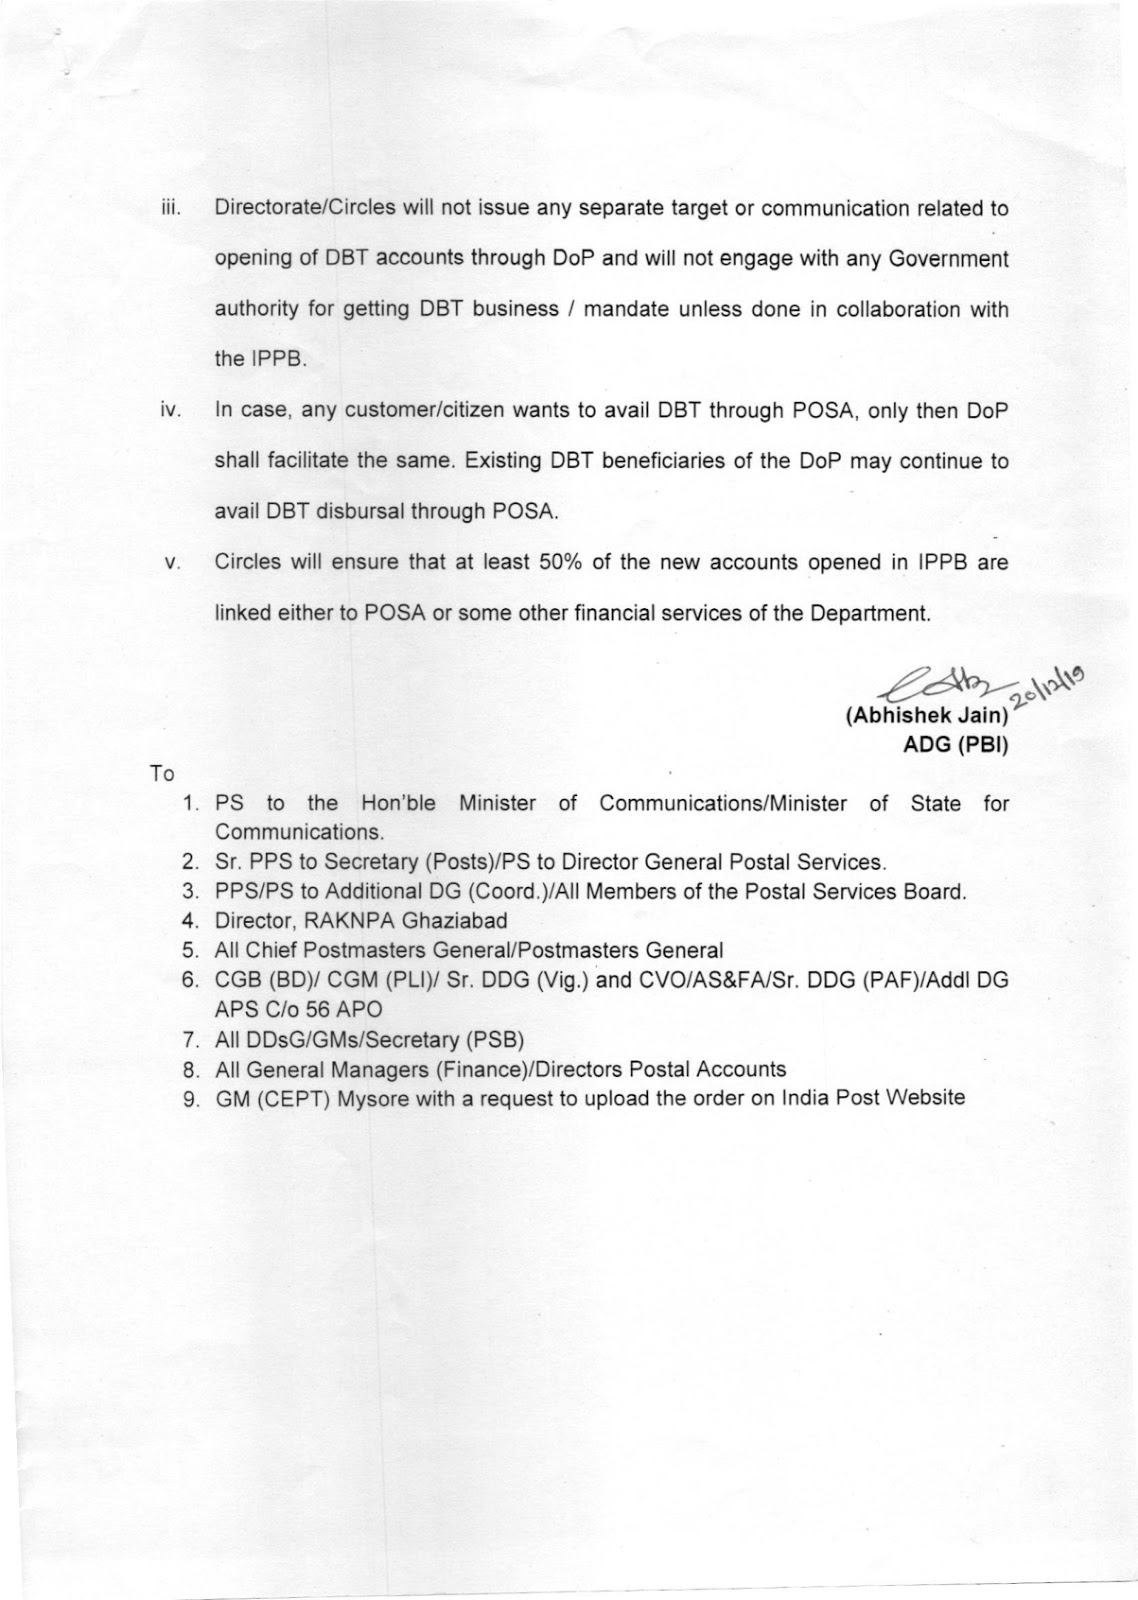 Revised DBT Policy for DOP